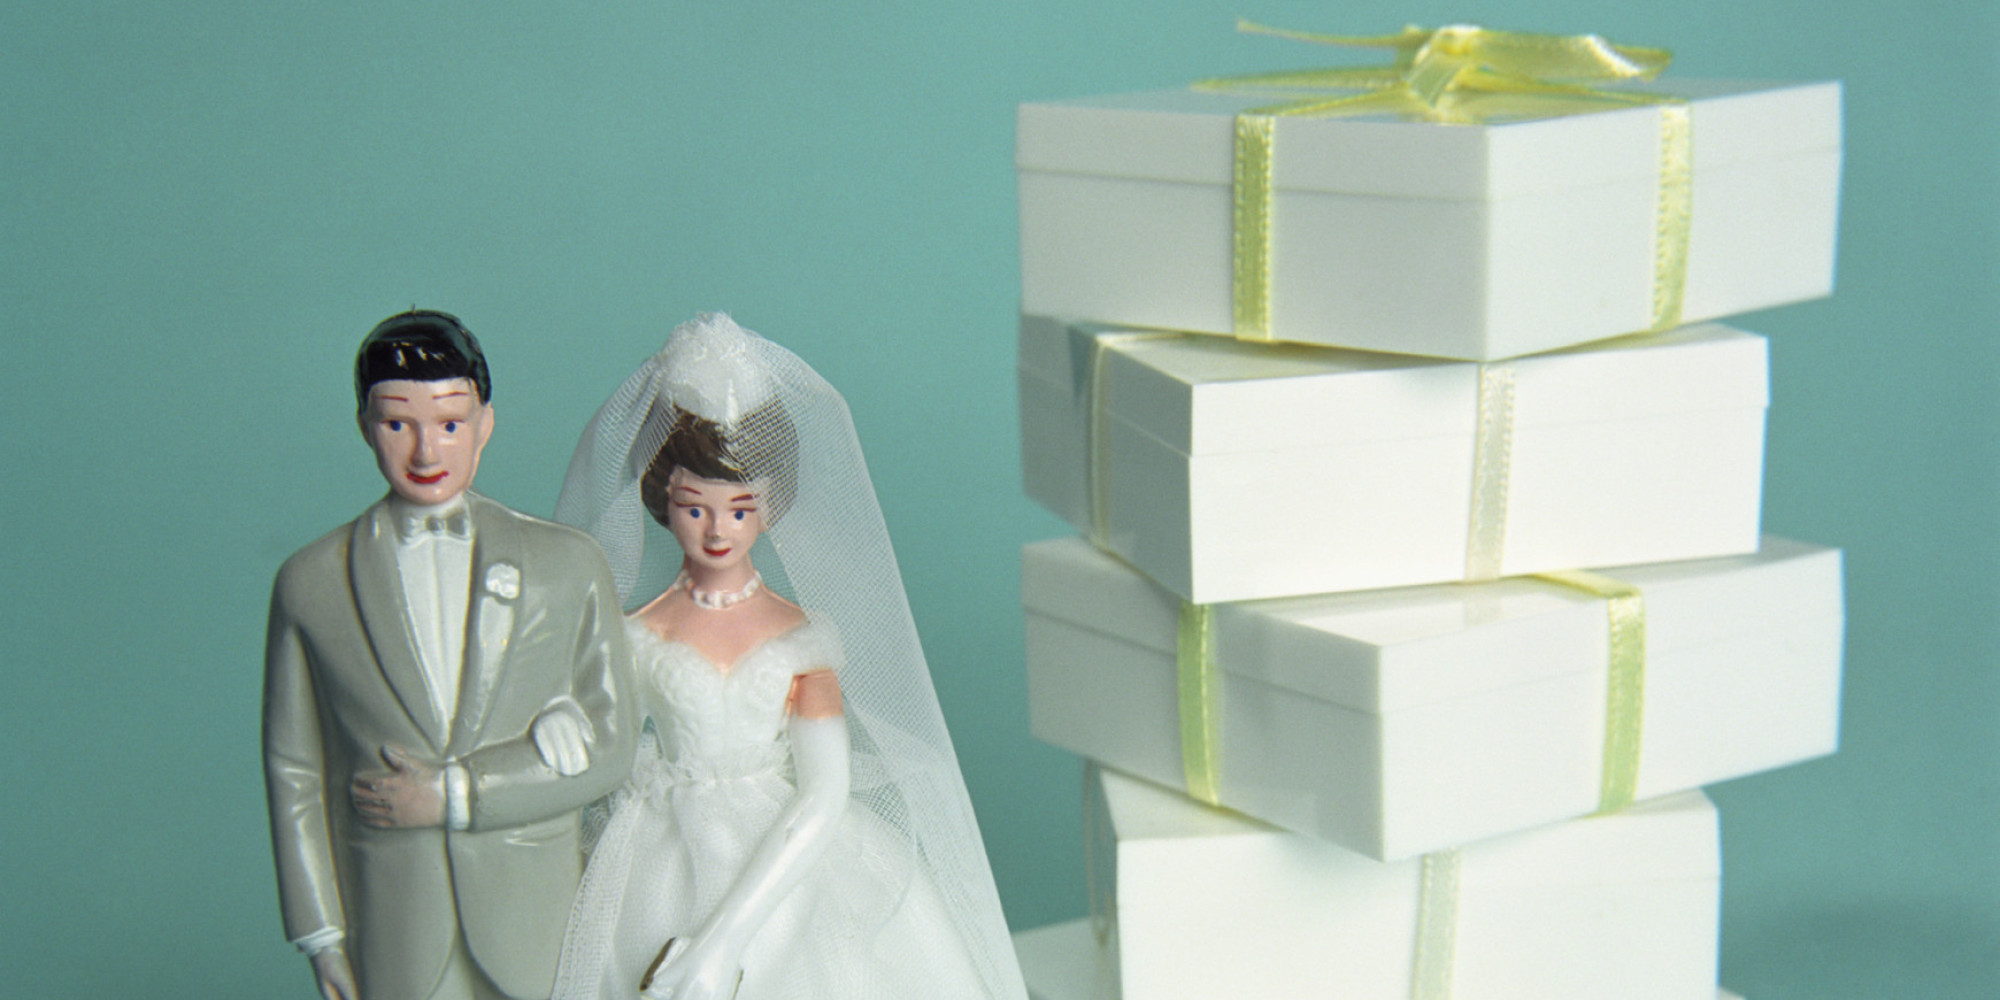 Wedding Gift Etiquette Amount 2015 : ... Consider When Deciding How Much To Spend On A Wedding Gift HuffPost